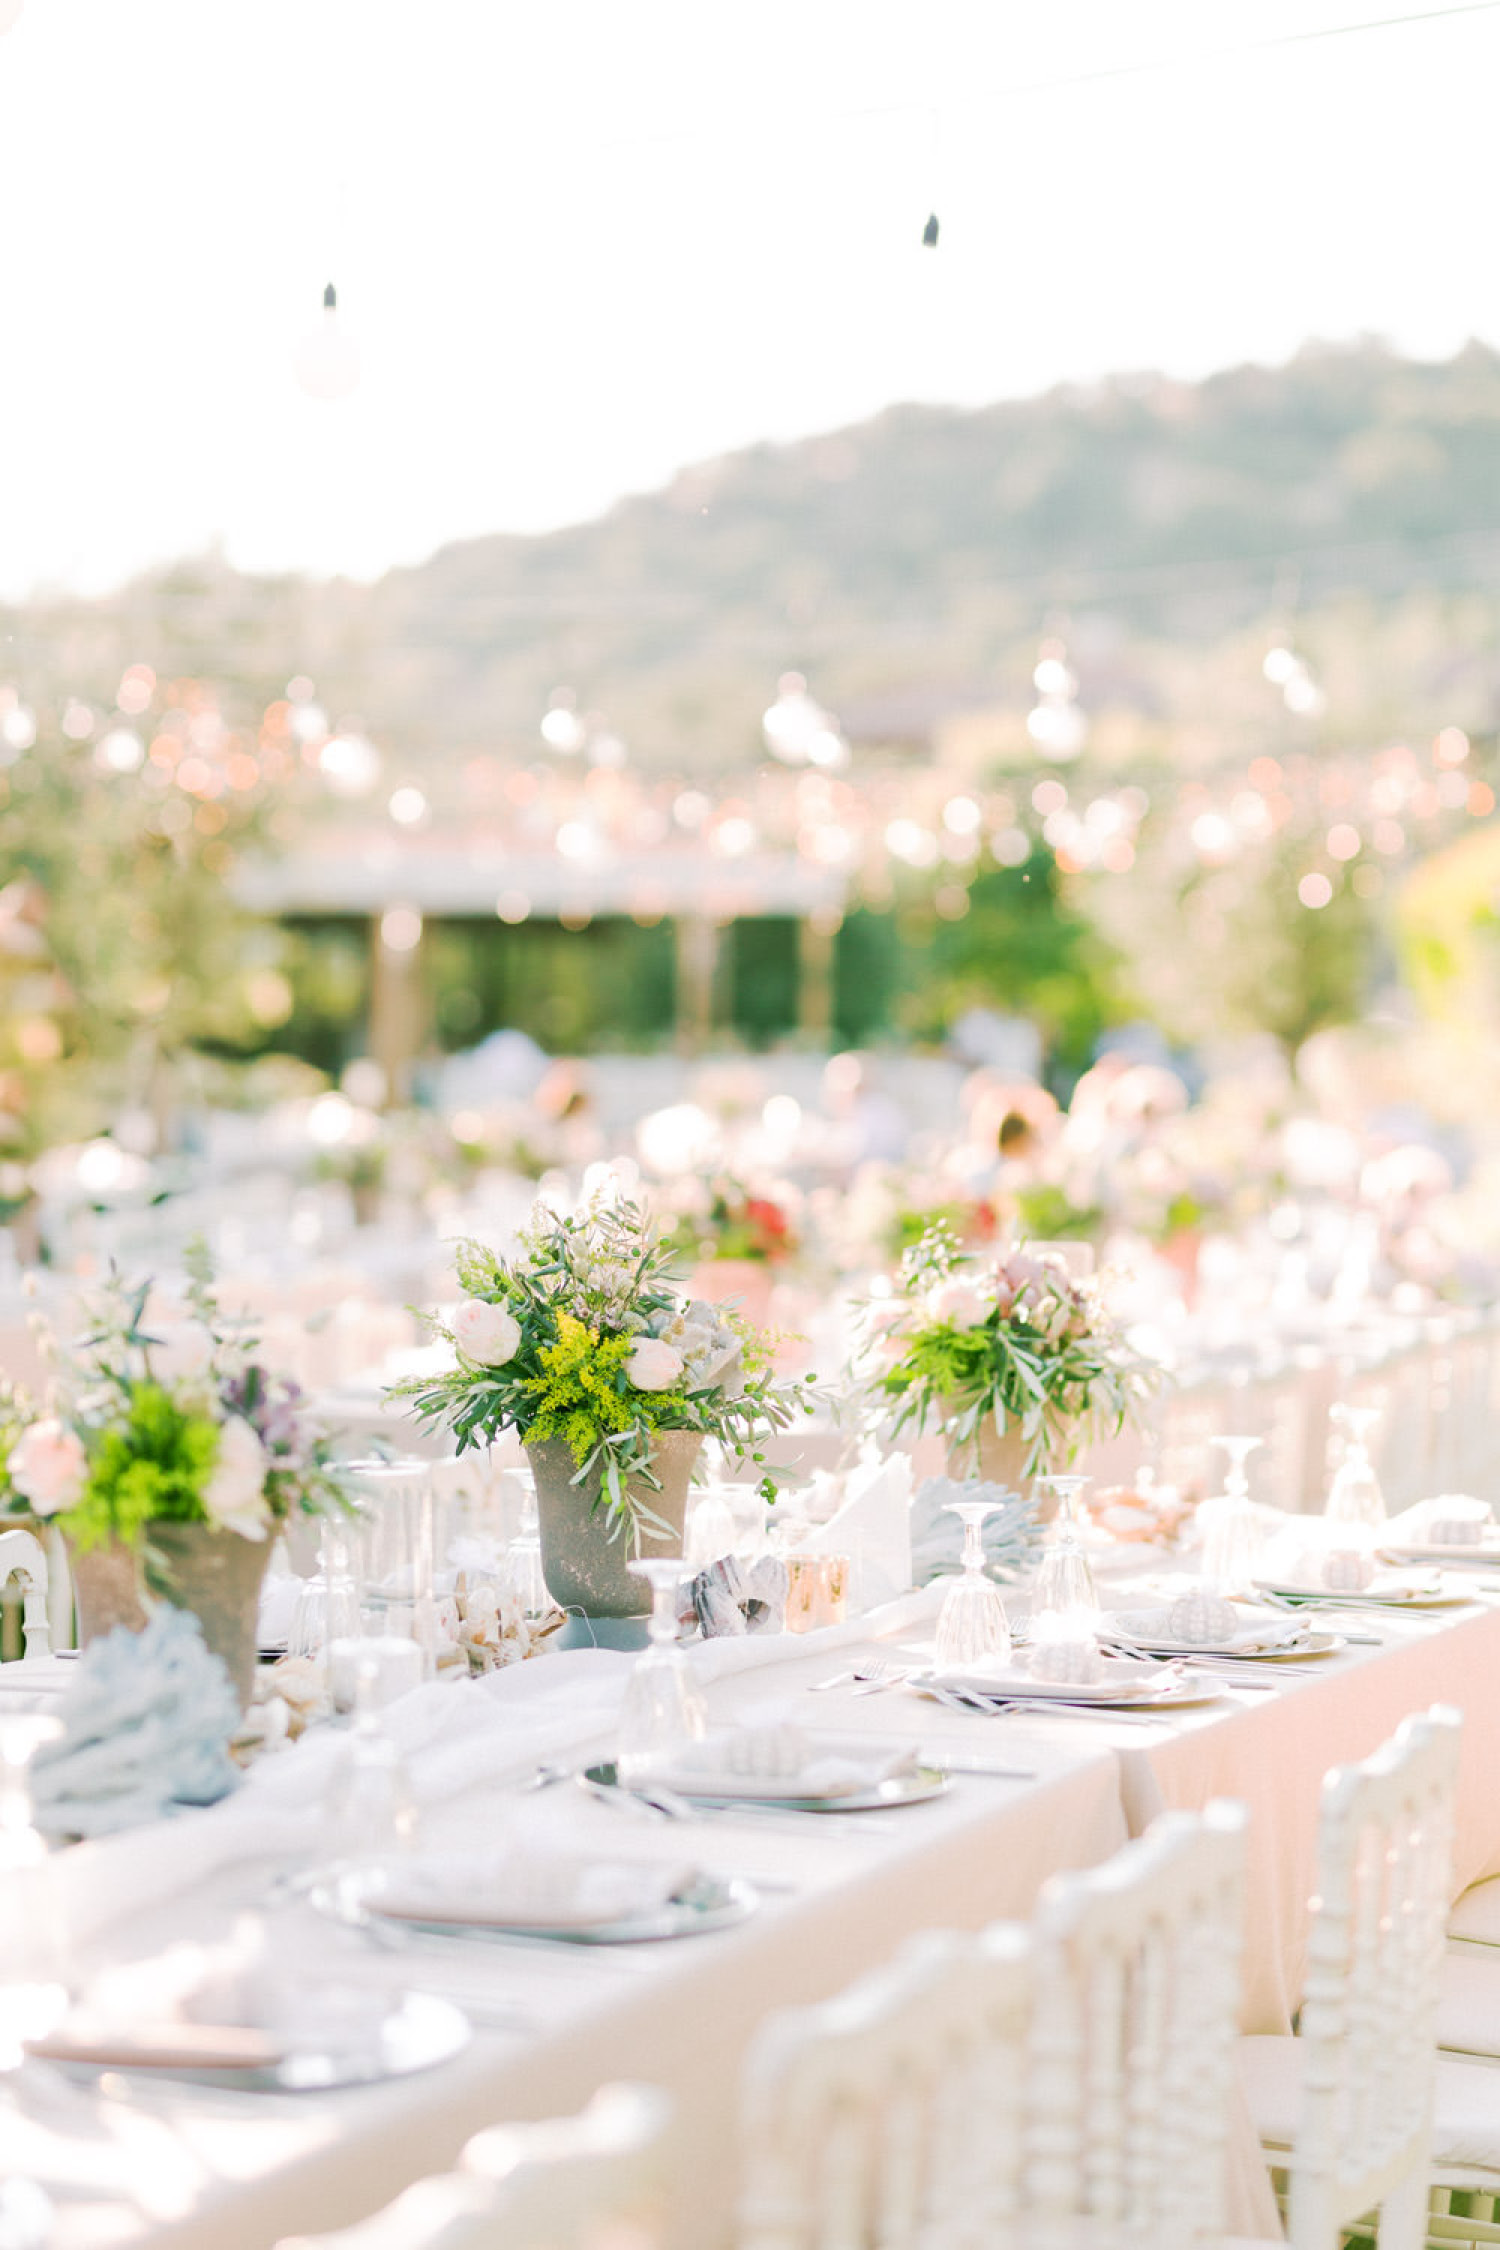 Mediterranean Seaside Wedding Design